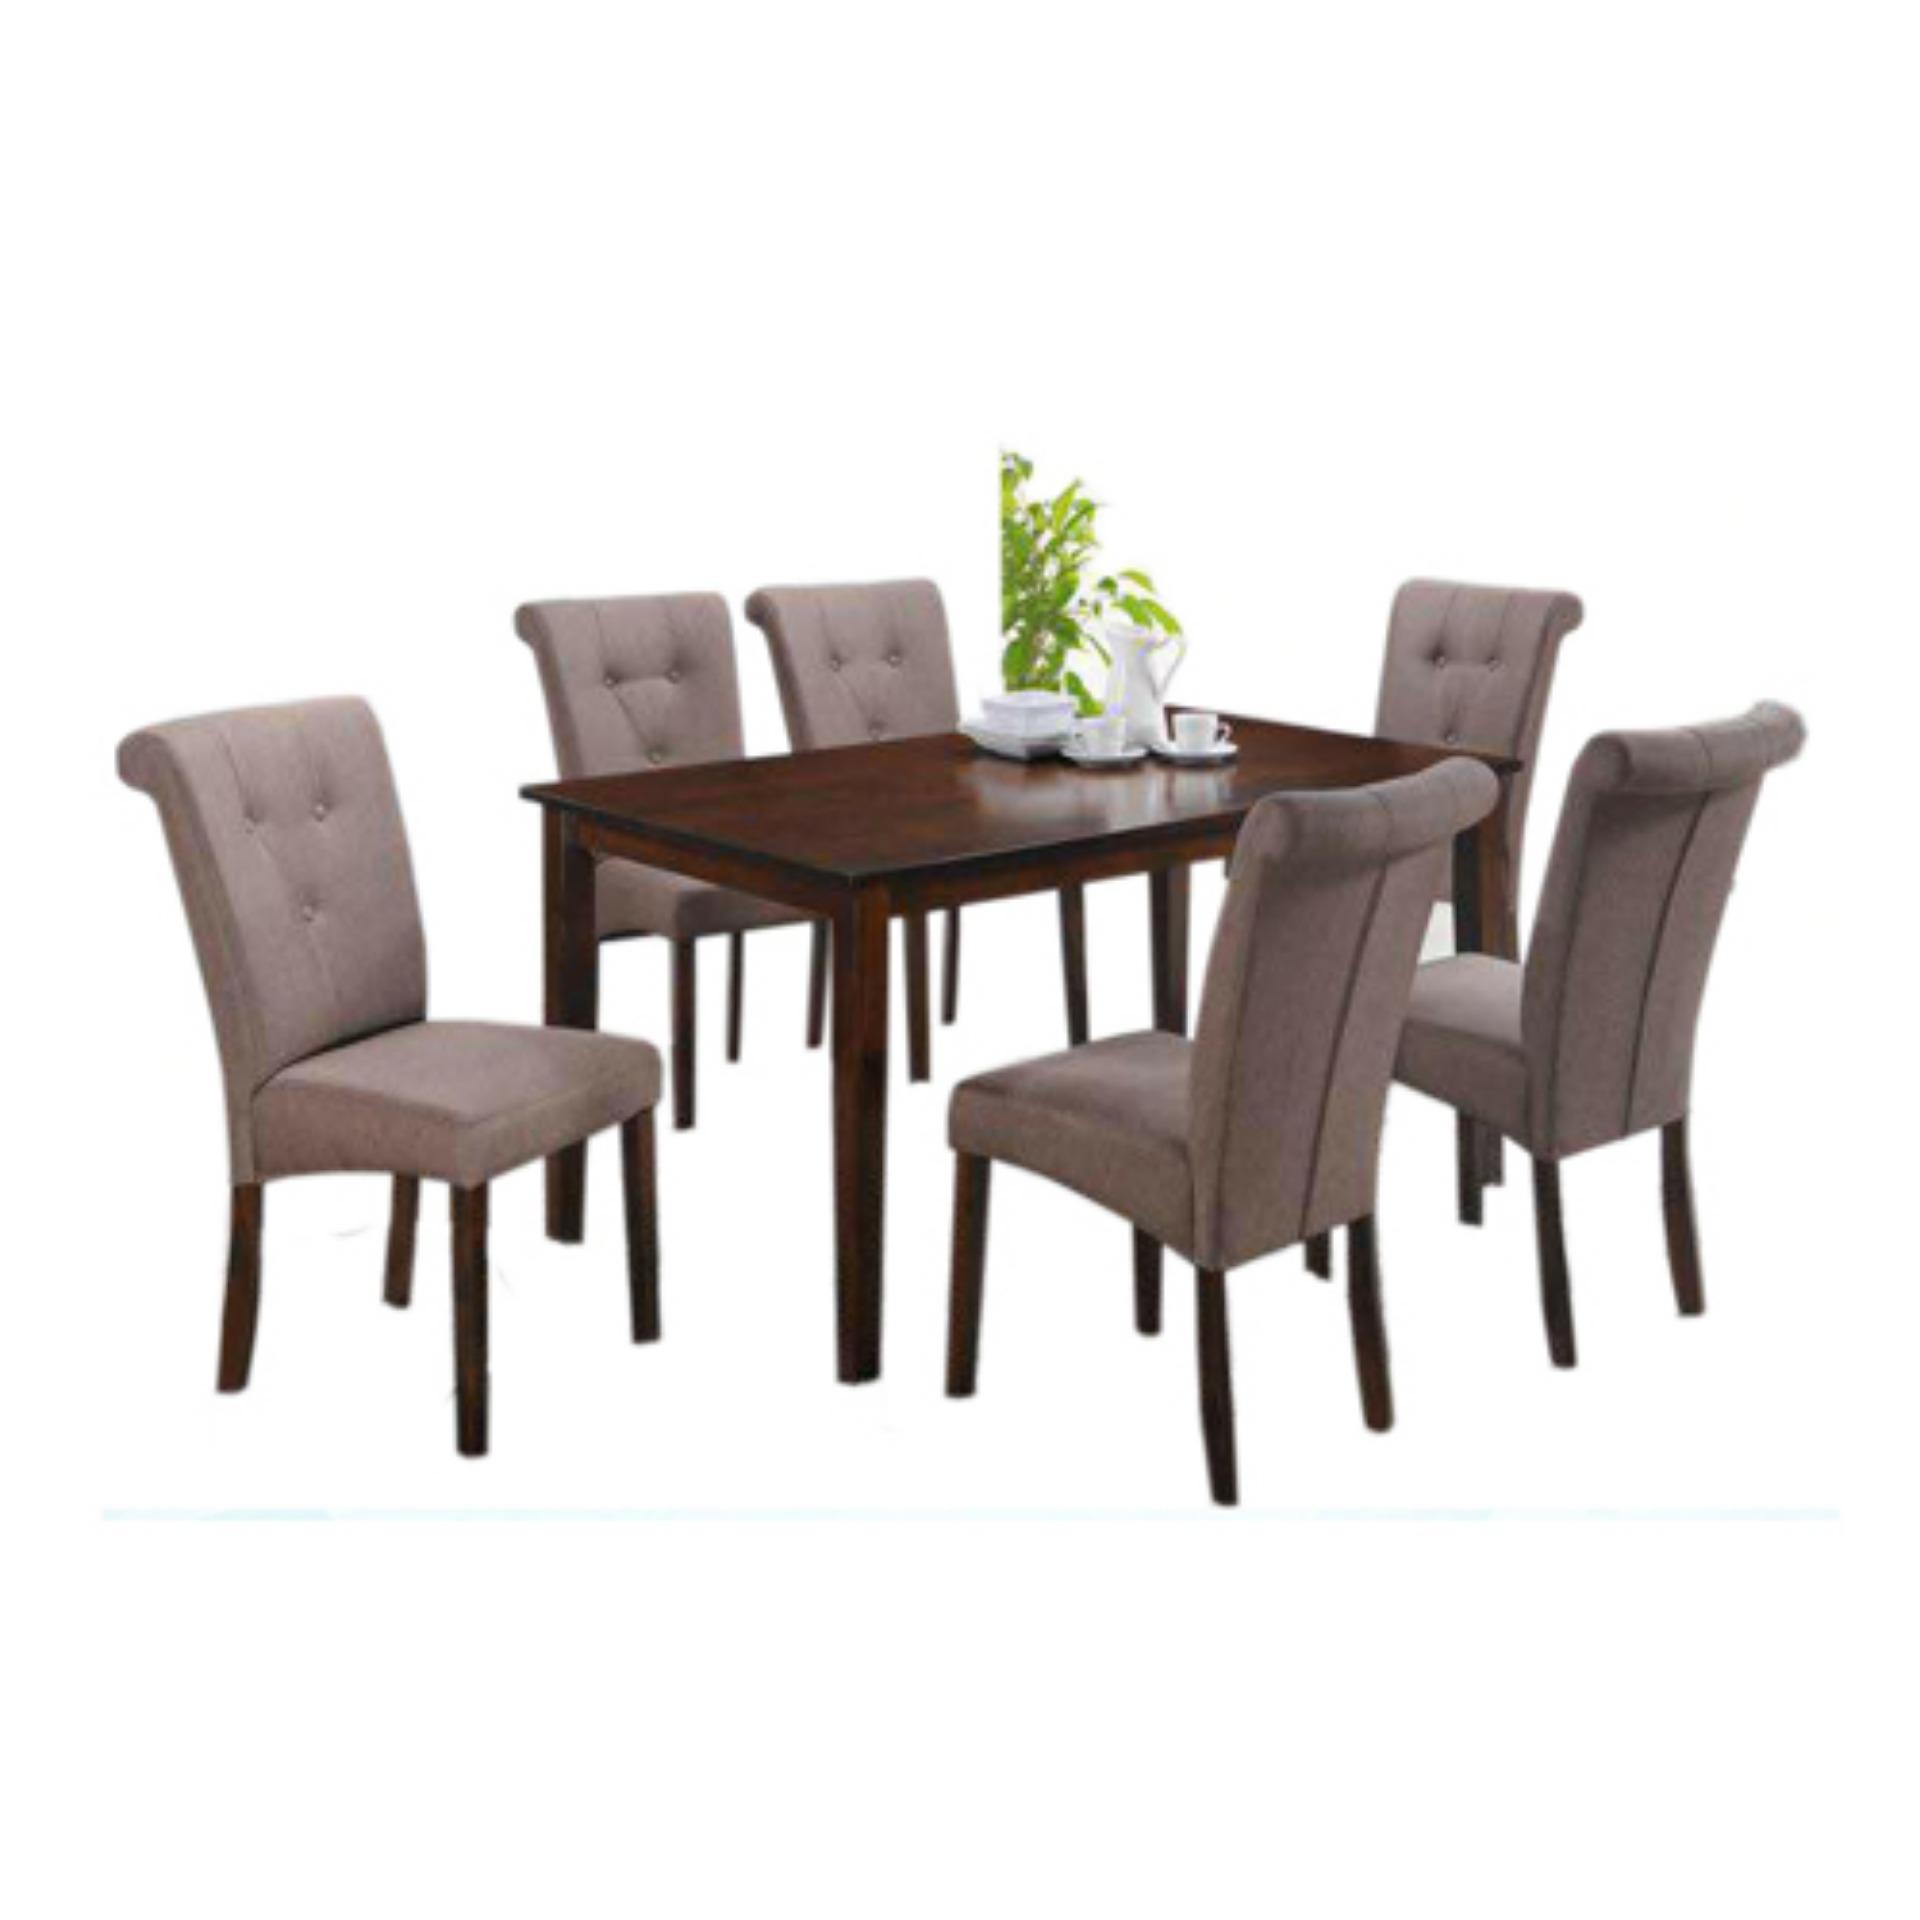 Philippines. Dexter 6-Seater Dining Set (Cherry Brown) 7d694f2a63